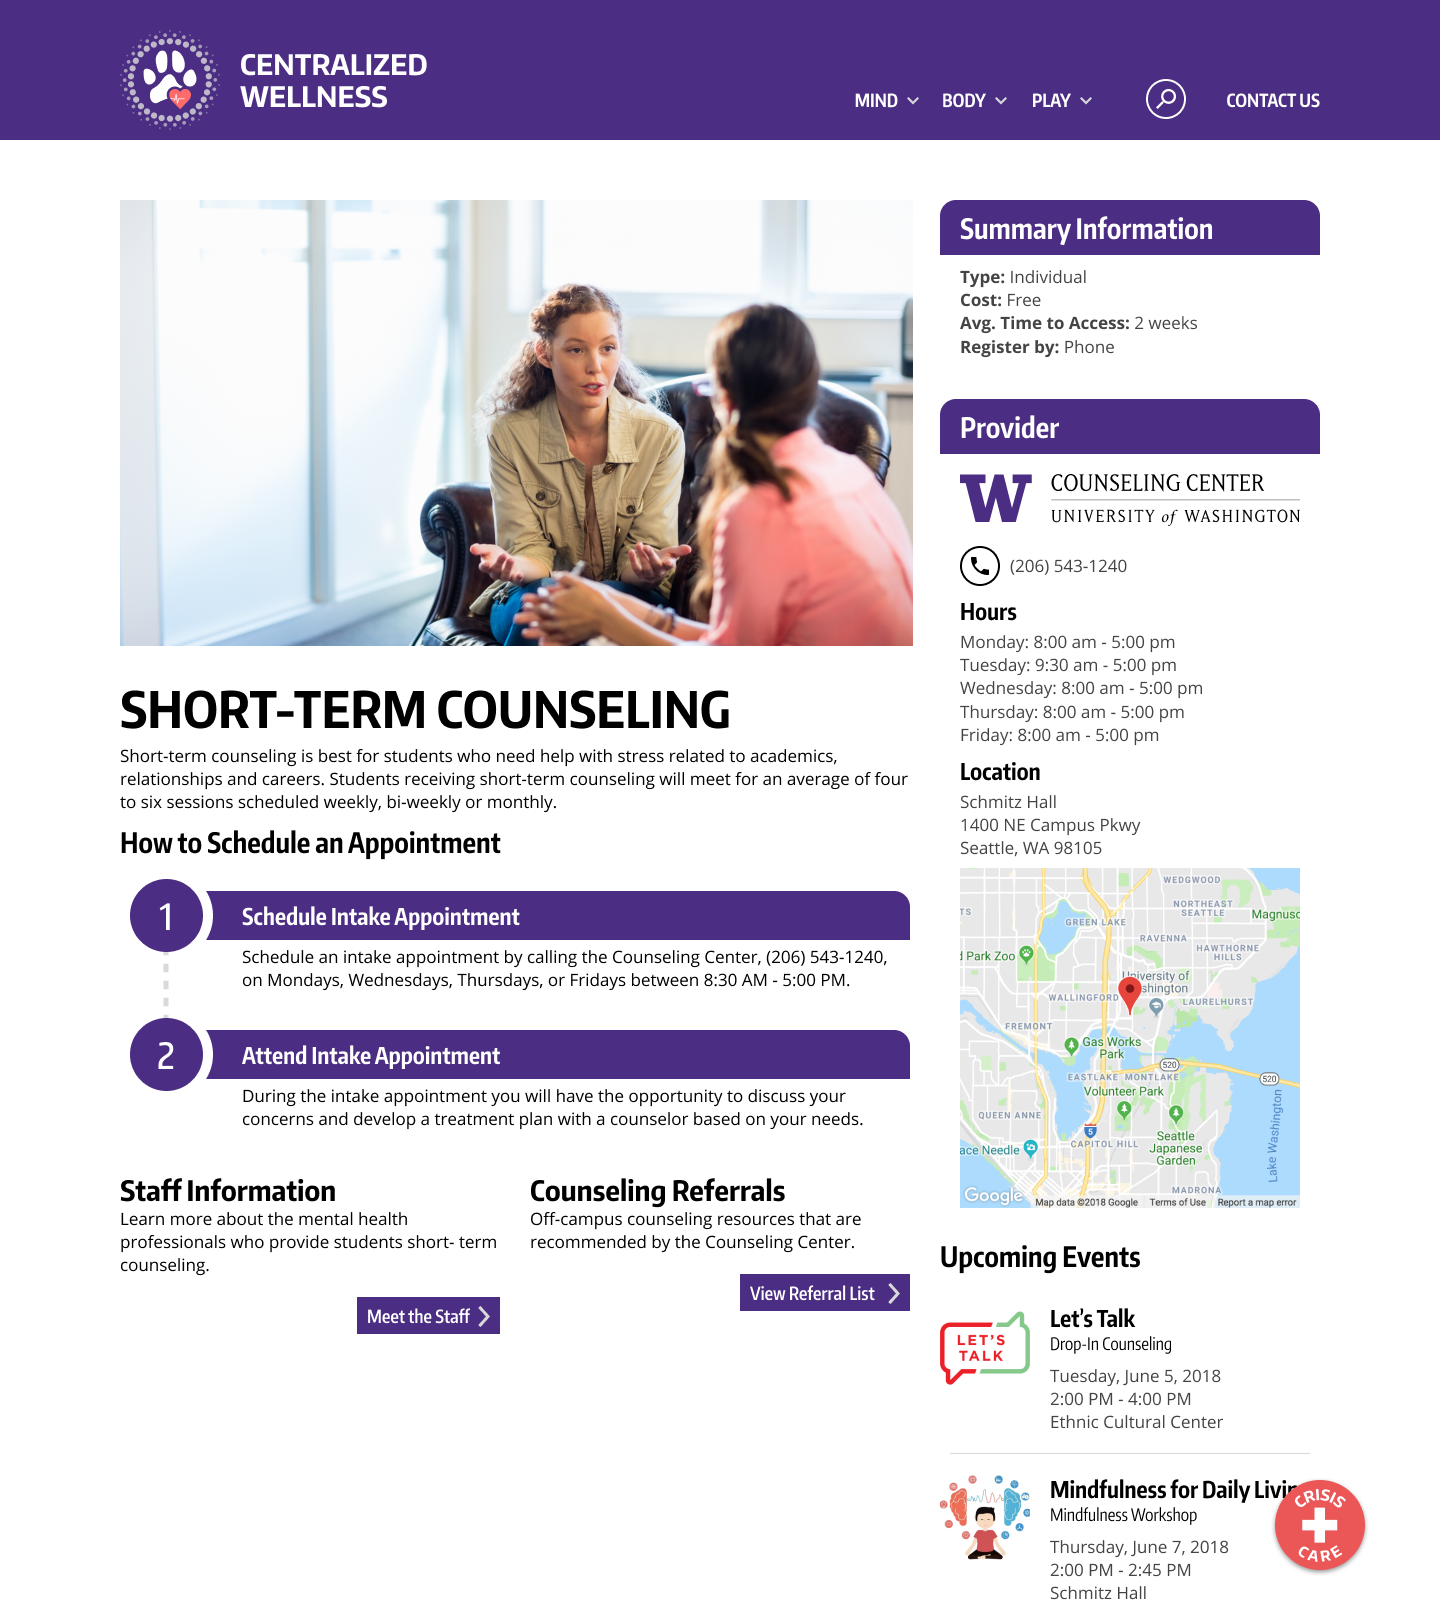 Short-term counseling:  An information page that gives the complete details on a specific resource